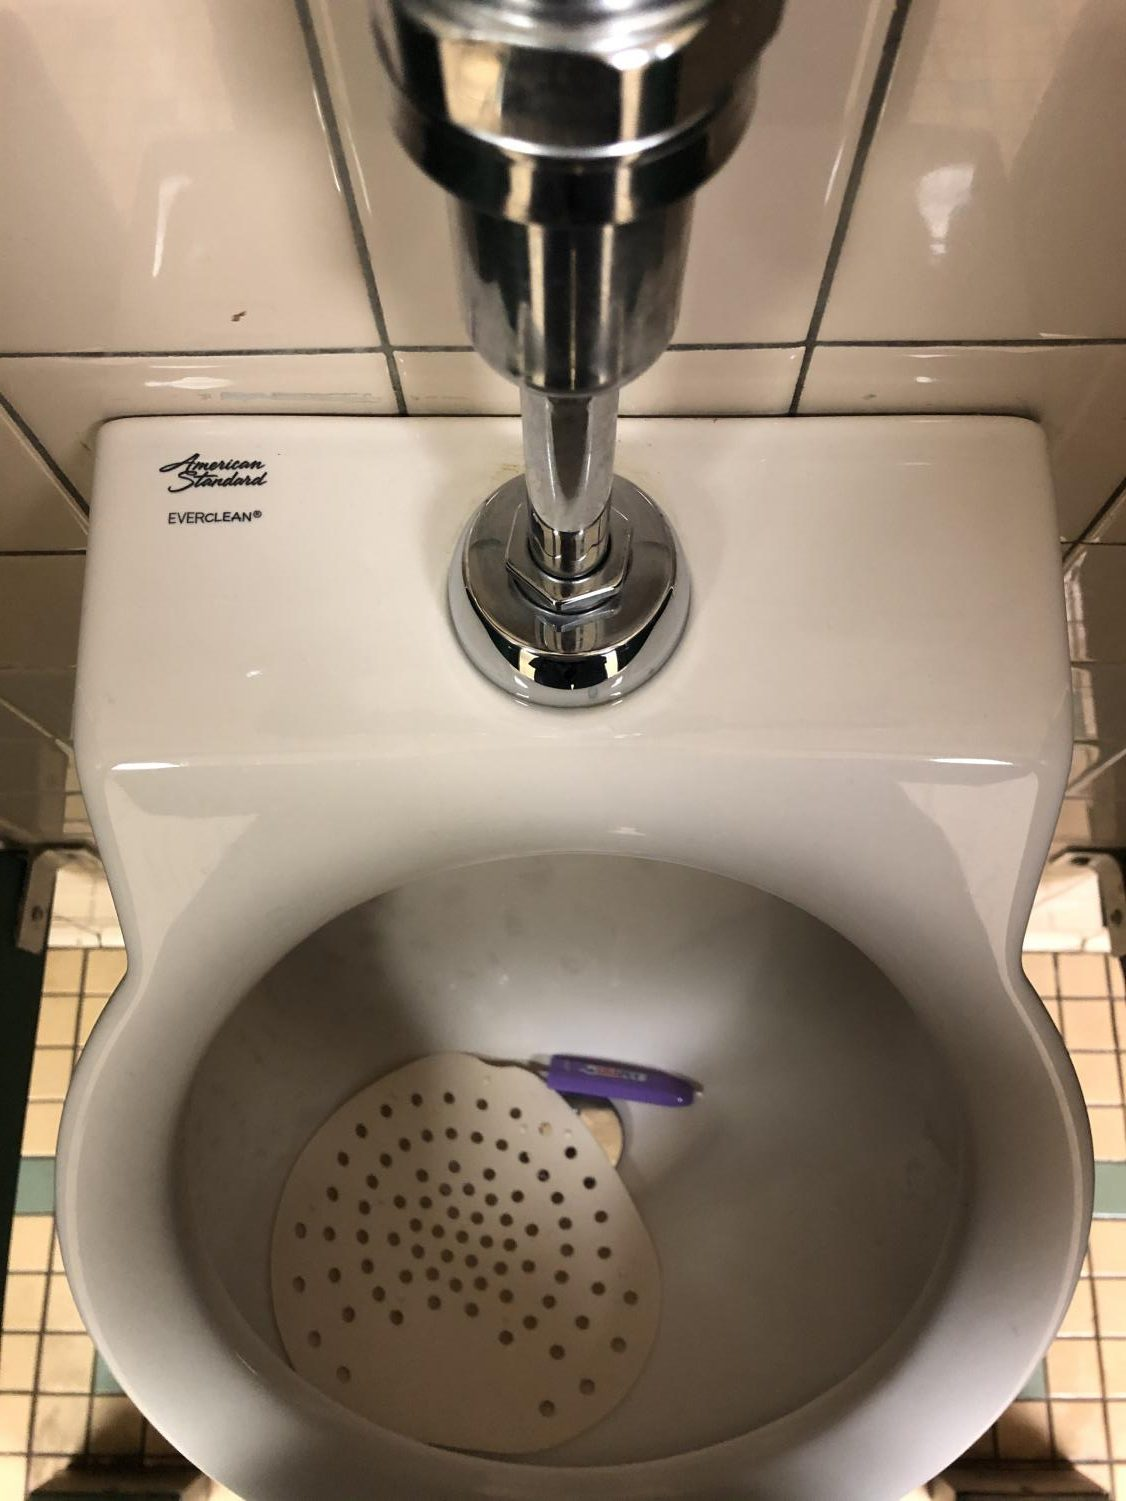 Vaping product found in urinal in lower 4000 wing boys bathroom.